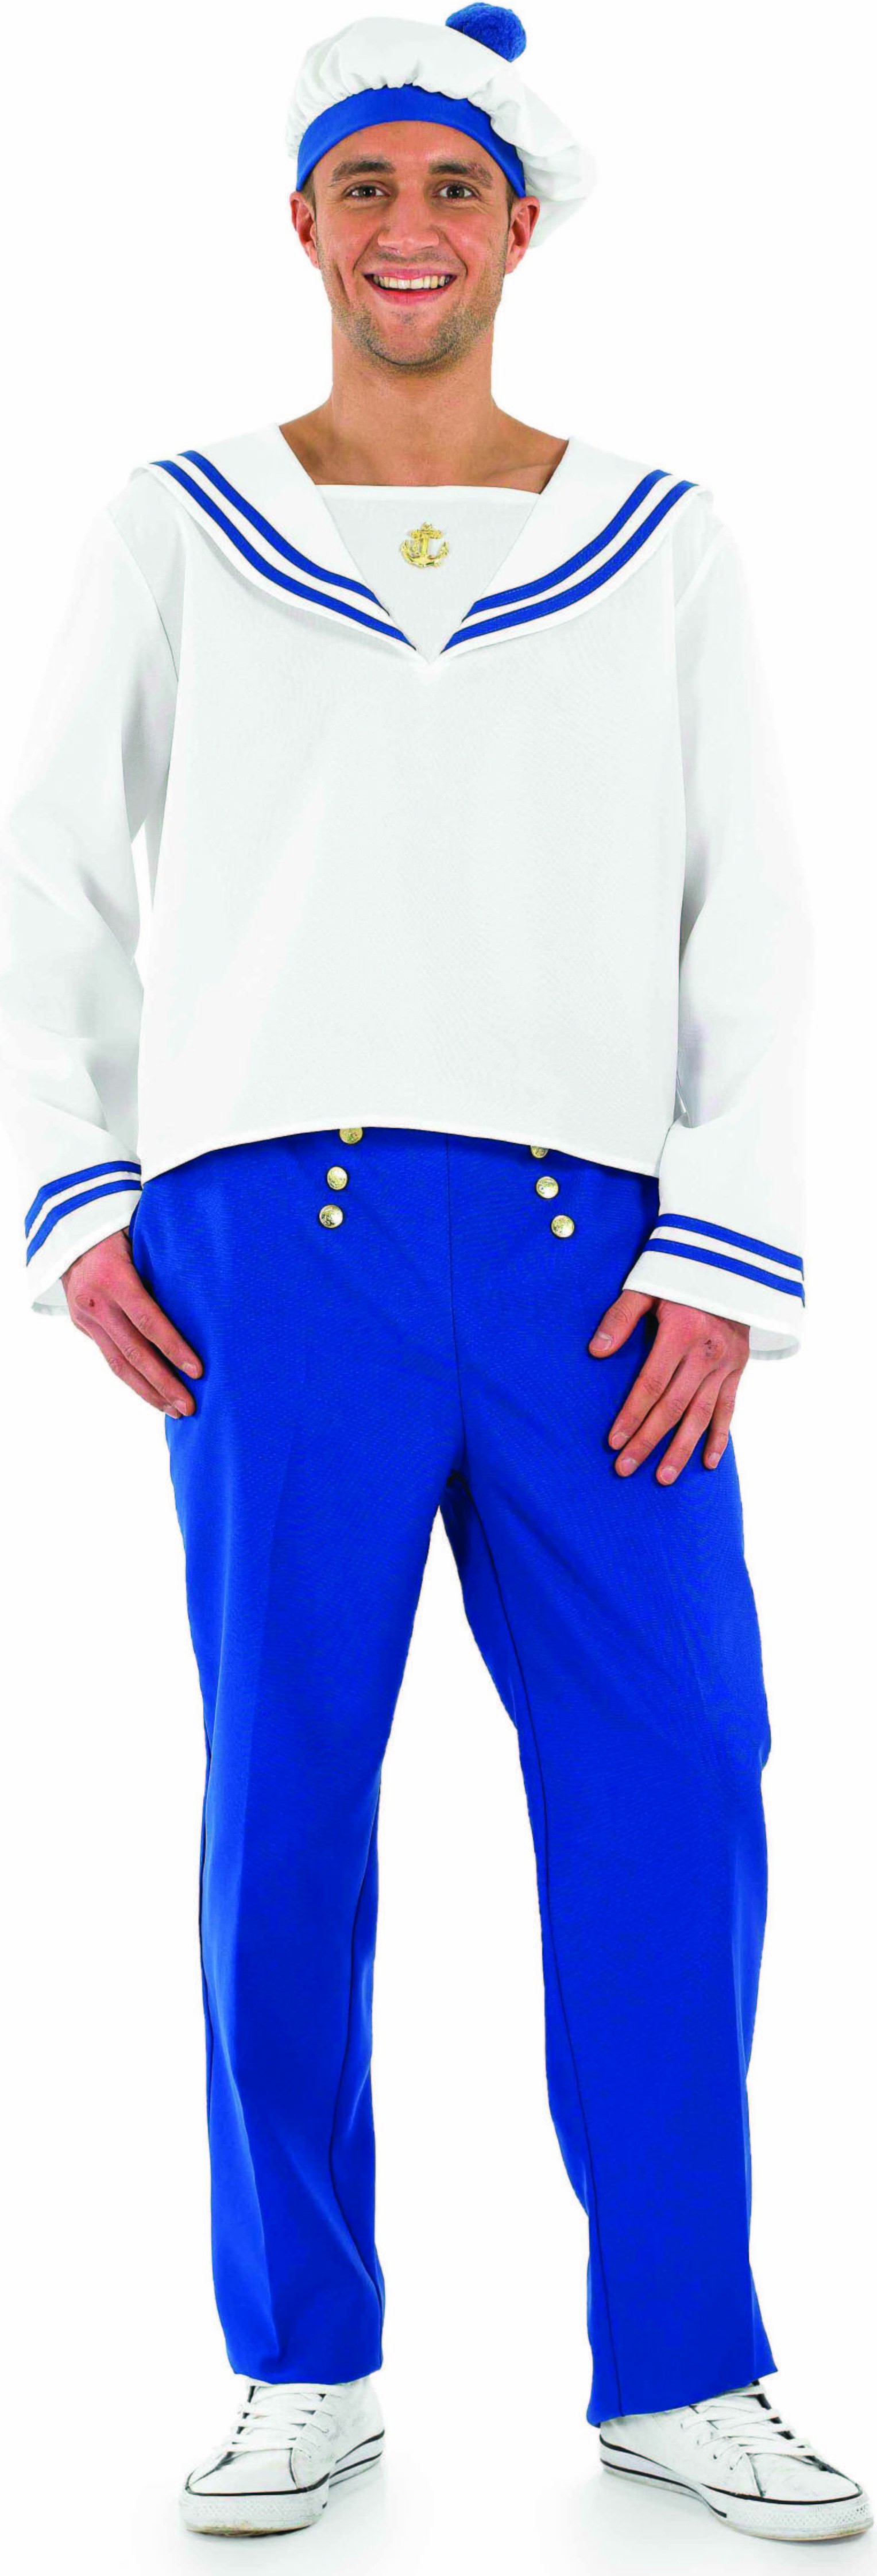 Mens Blue Sailor Guy Sailor Outfit (Blue, White)